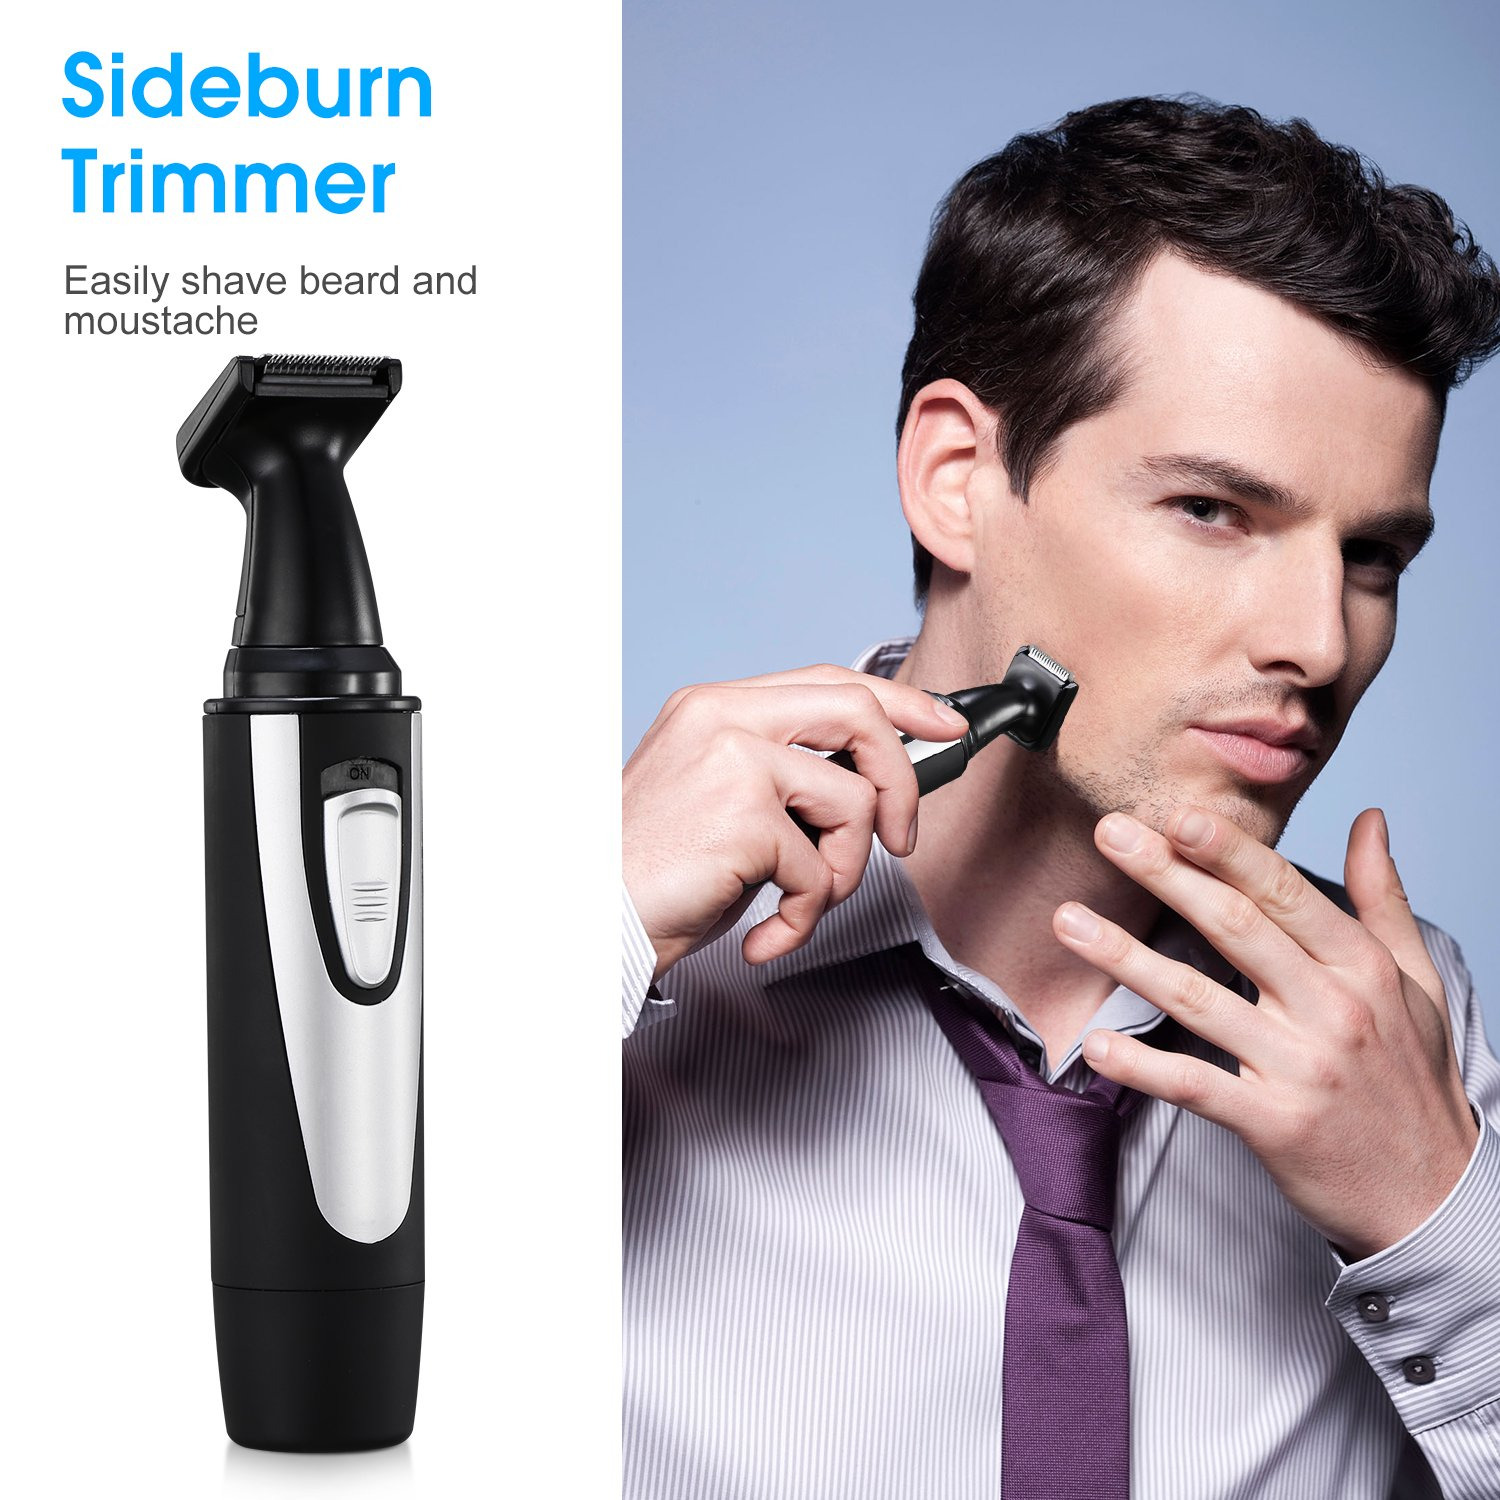 Has Mens facial hair trimmer excited